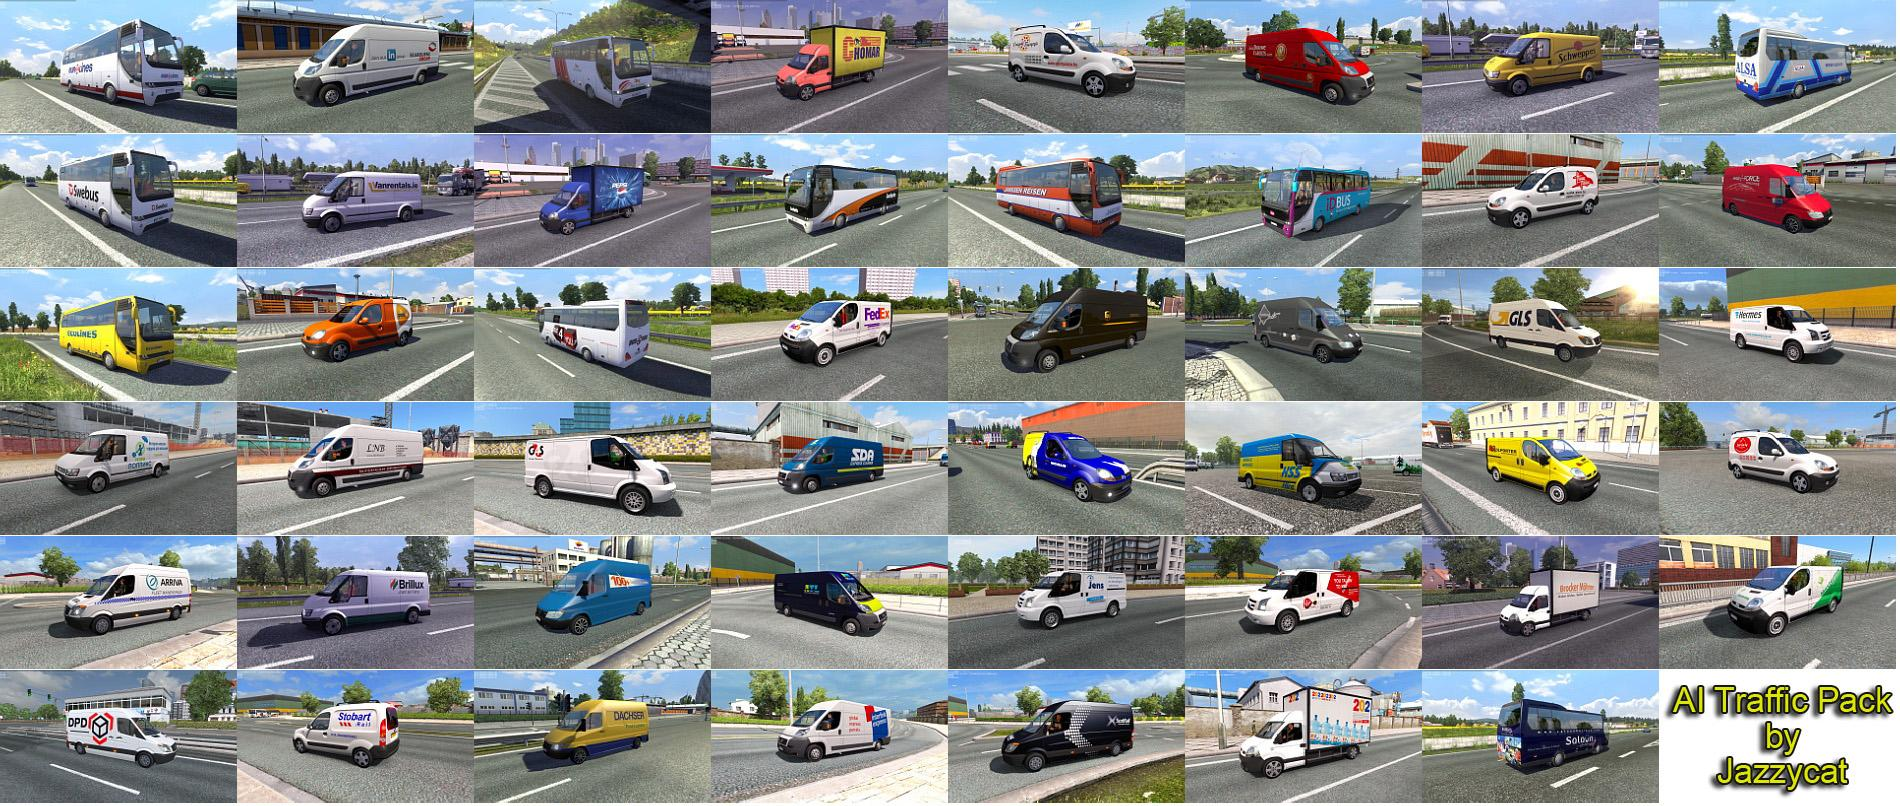 AI TRAFFIC PACK BY JAZZYCAT V3.3 For ETS2 -Euro Truck ...